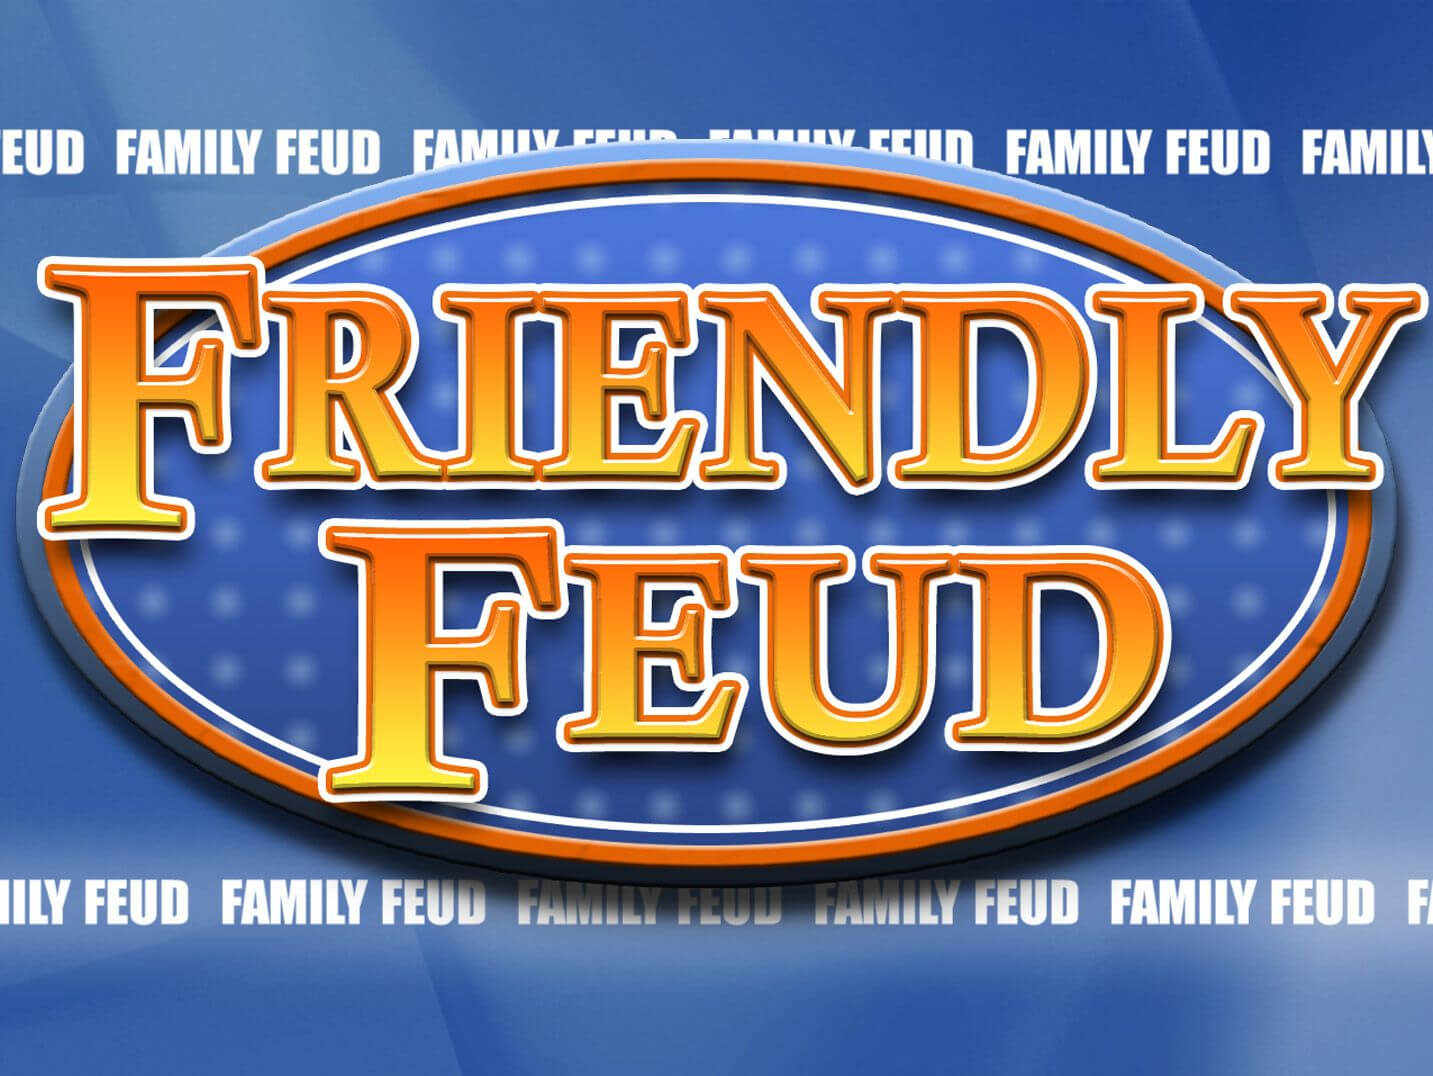 006 Family Feud Powerpoint Template Unforgettable Ideas Fast Throughout Family Feud Powerpoint Template With Sound